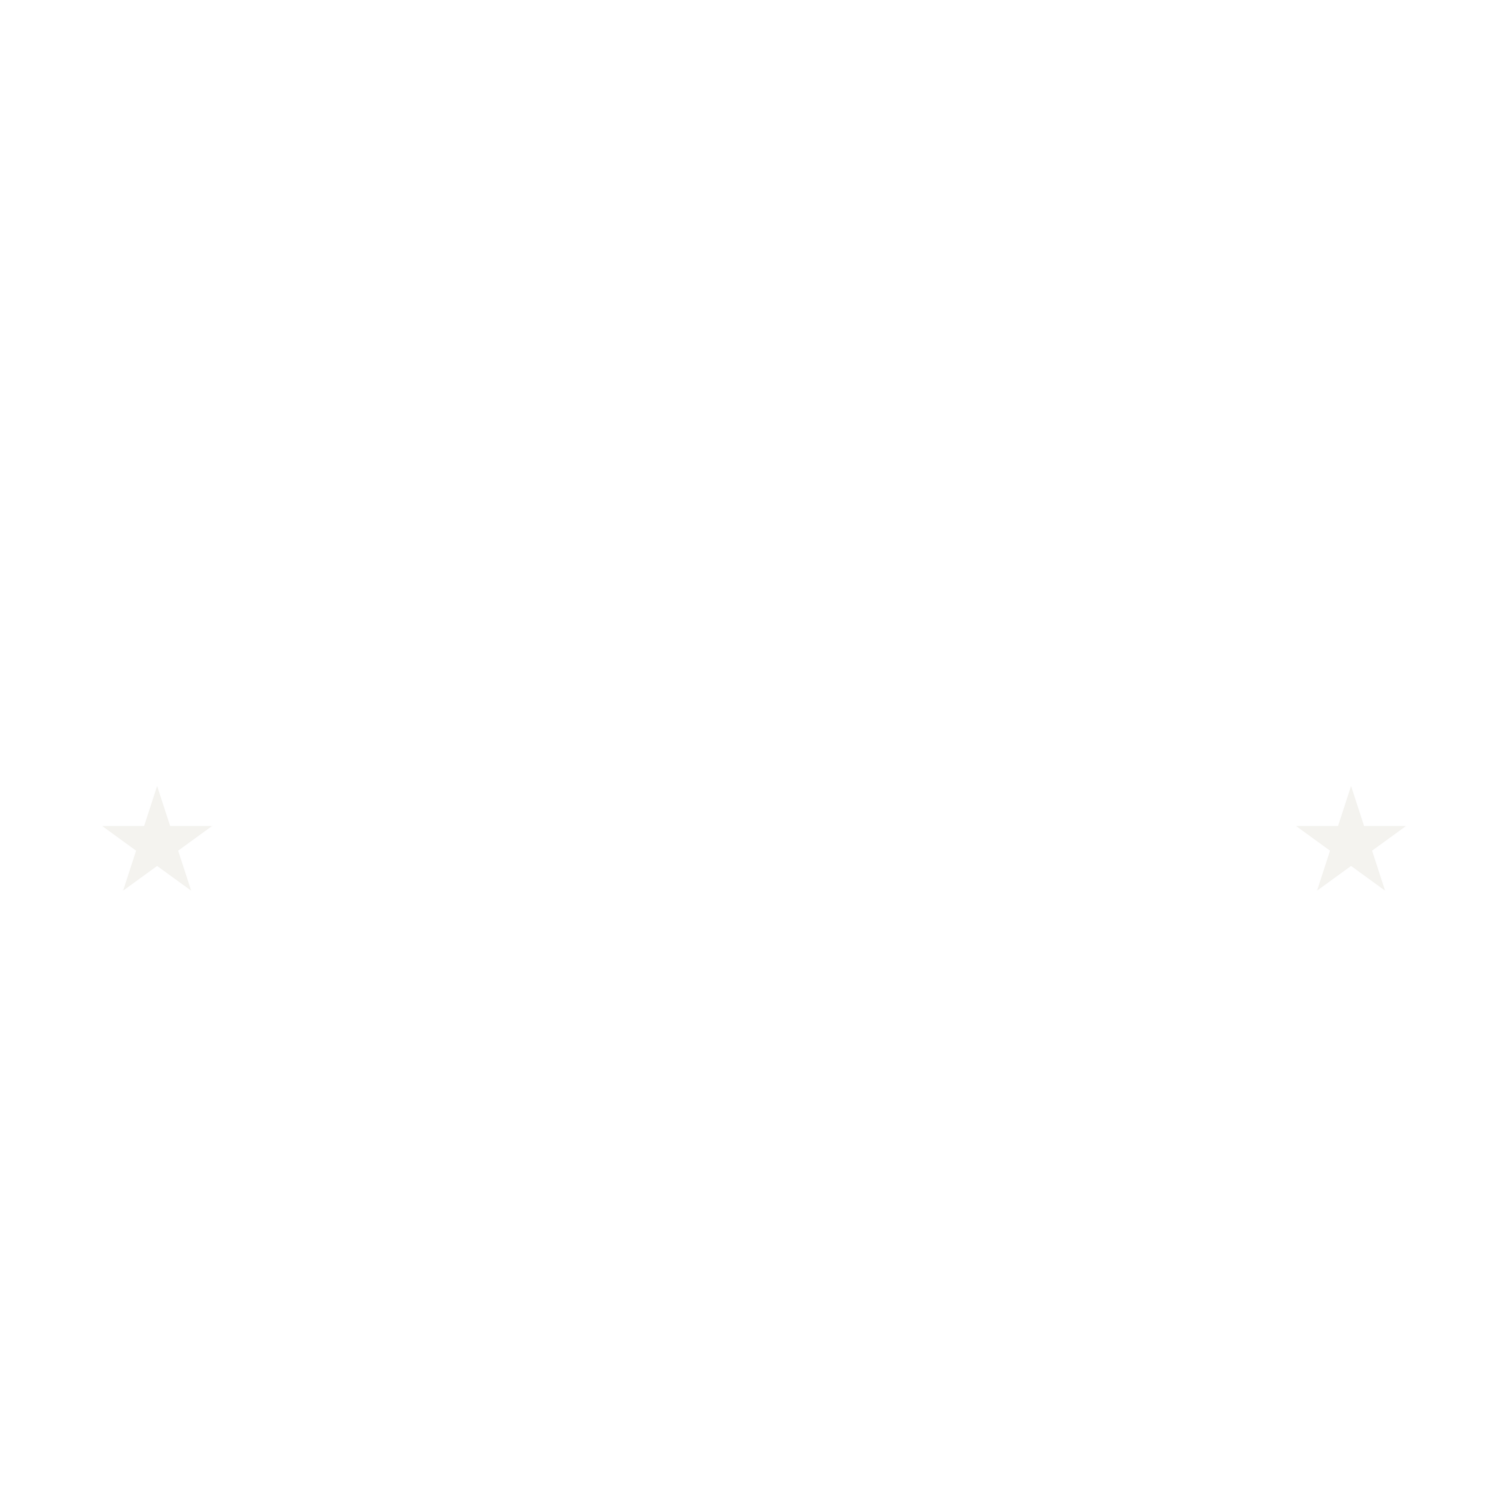 Grace Capital City